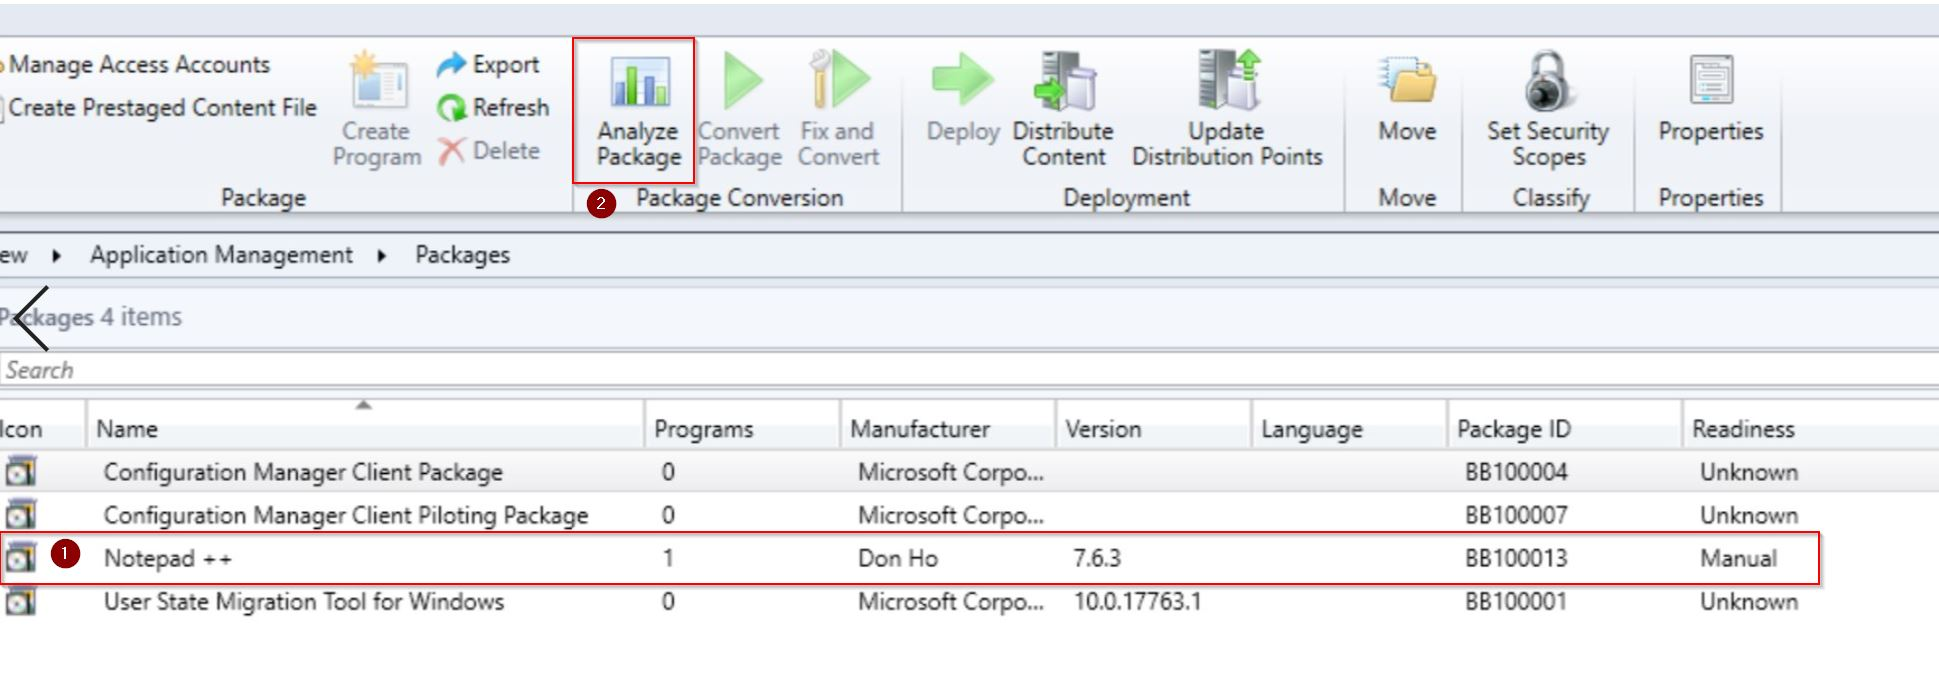 convert sccm package to application